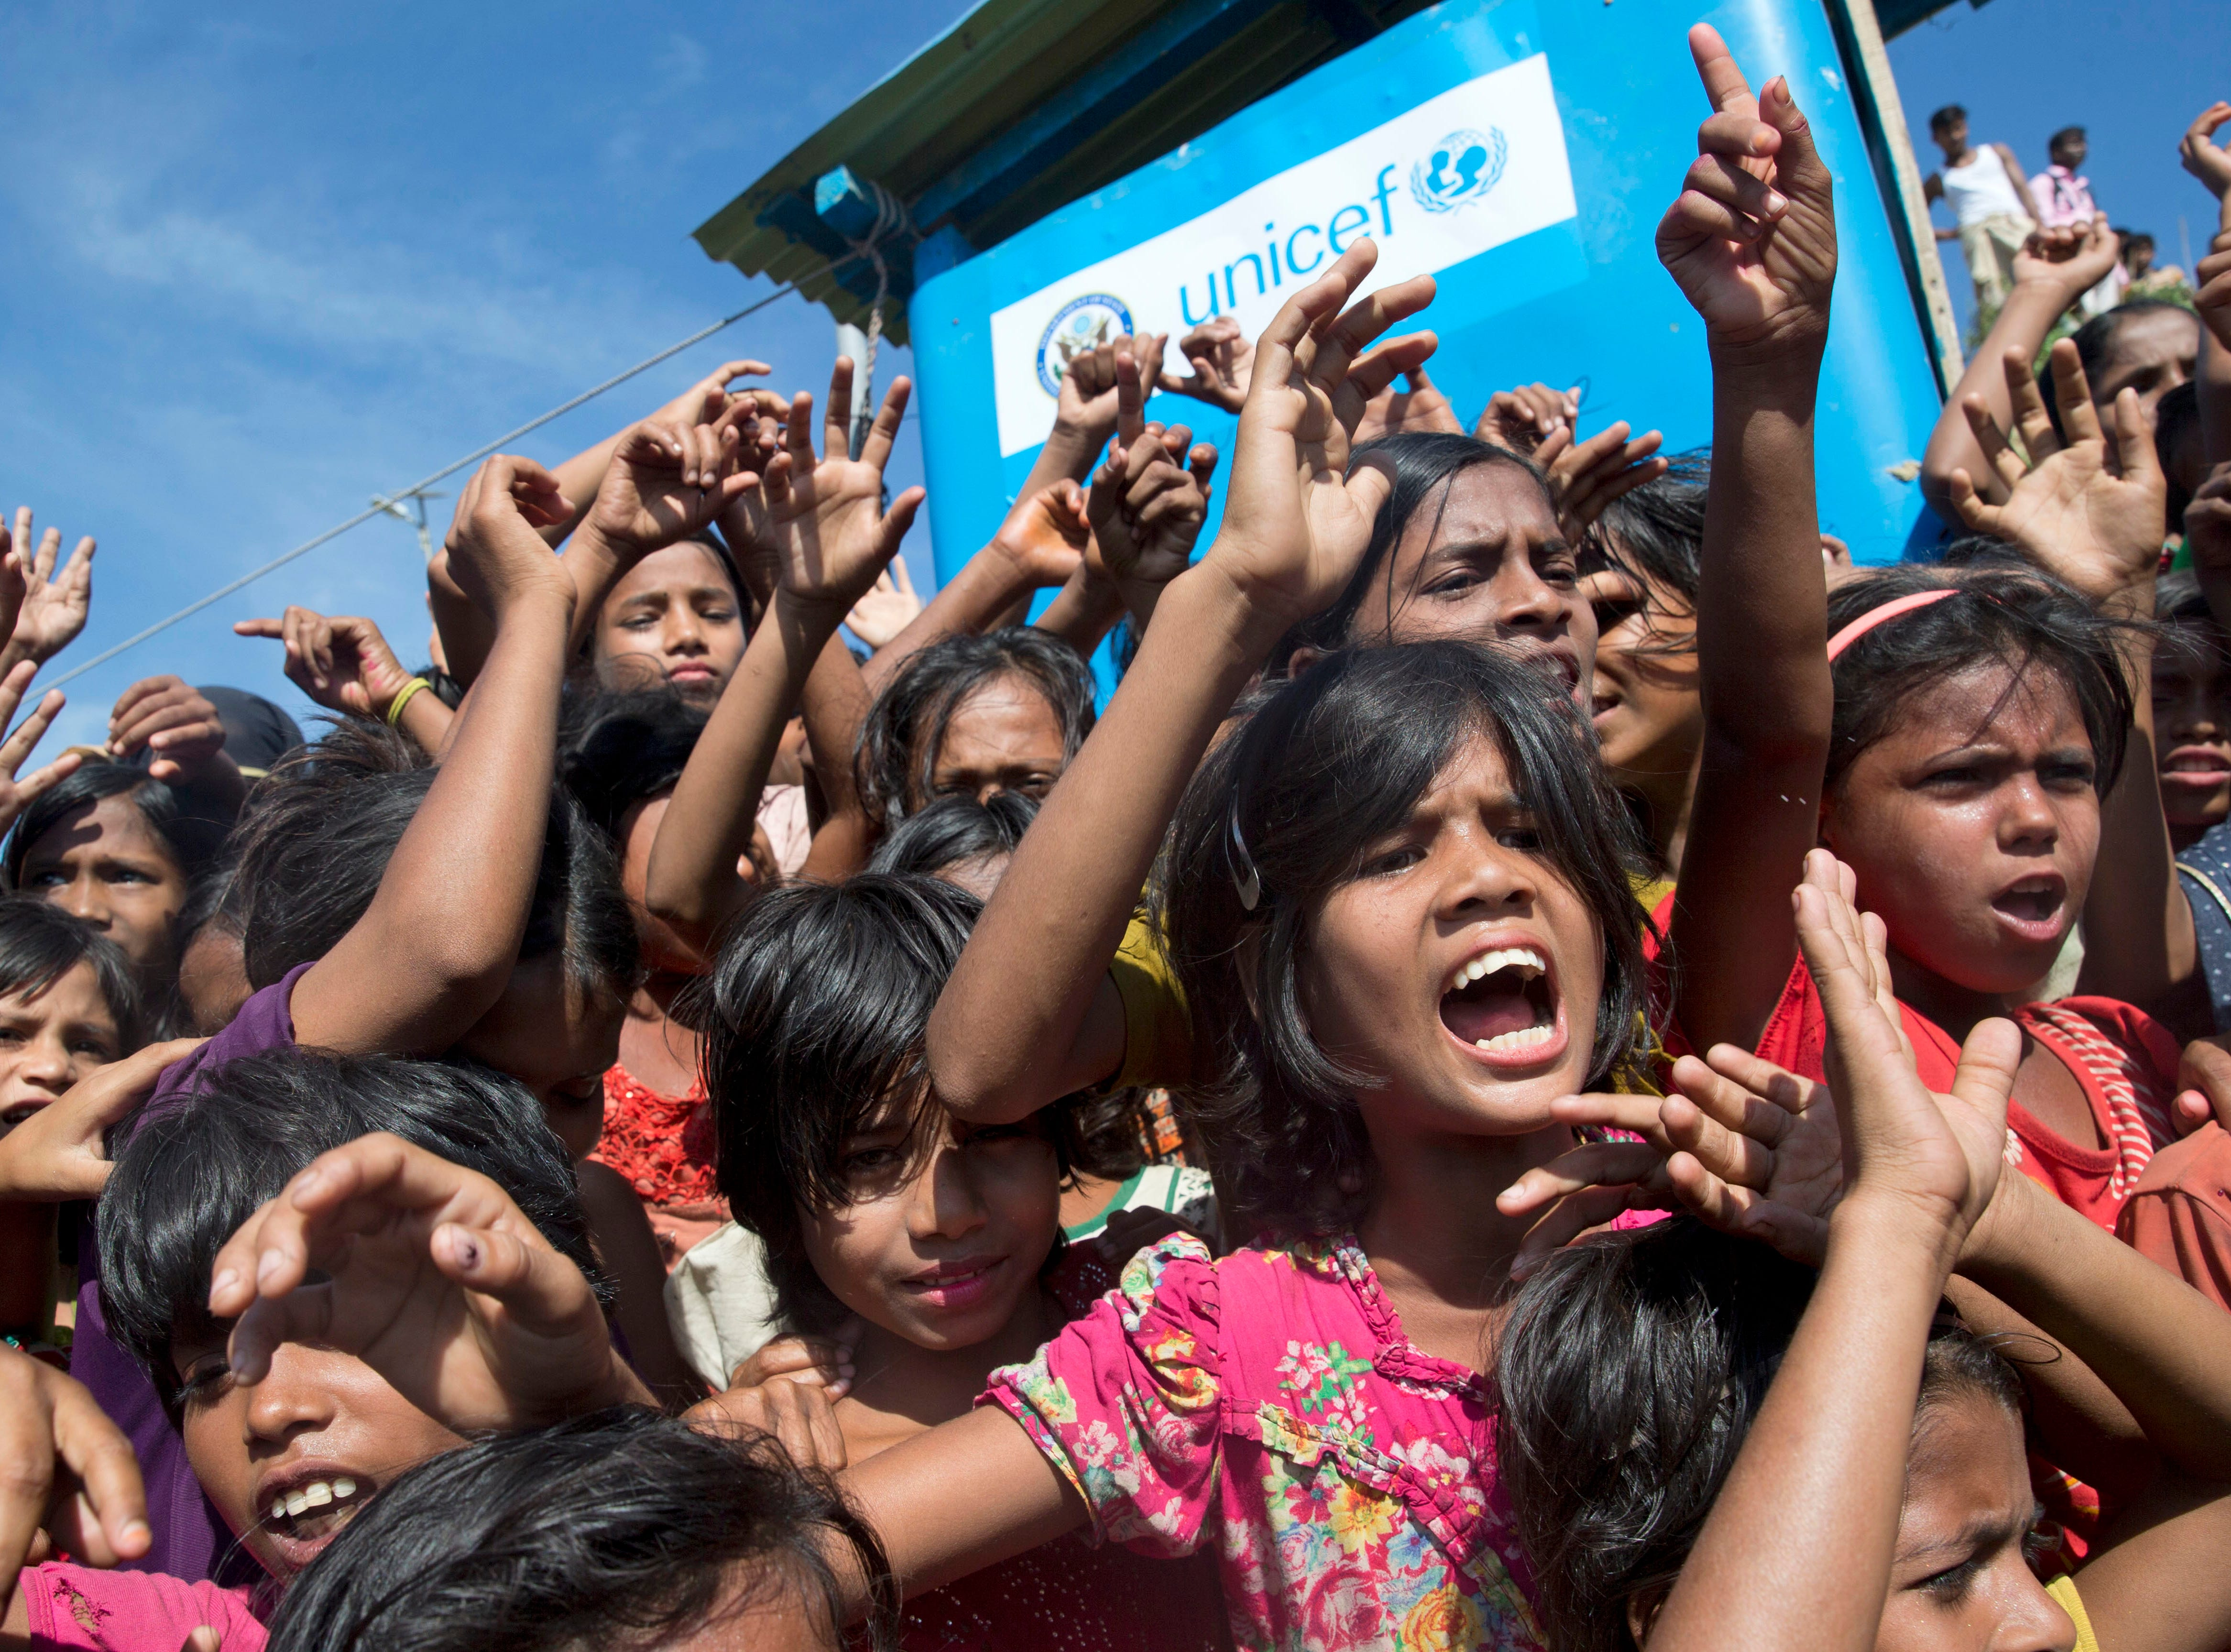 Rohingya refugee children shout slogans during a protest against the repatriation process at Unchiprang refugee camp near Cox's Bazar, in Bangladesh, Thursday, Nov. 15, 2018. The head of Bangladesh's refugee commission said plans to begin a voluntary repatriation of Rohingya Muslim refugees to their native Myanmar on Thursday were scrapped after officials were unable to find anyone who wanted to return.